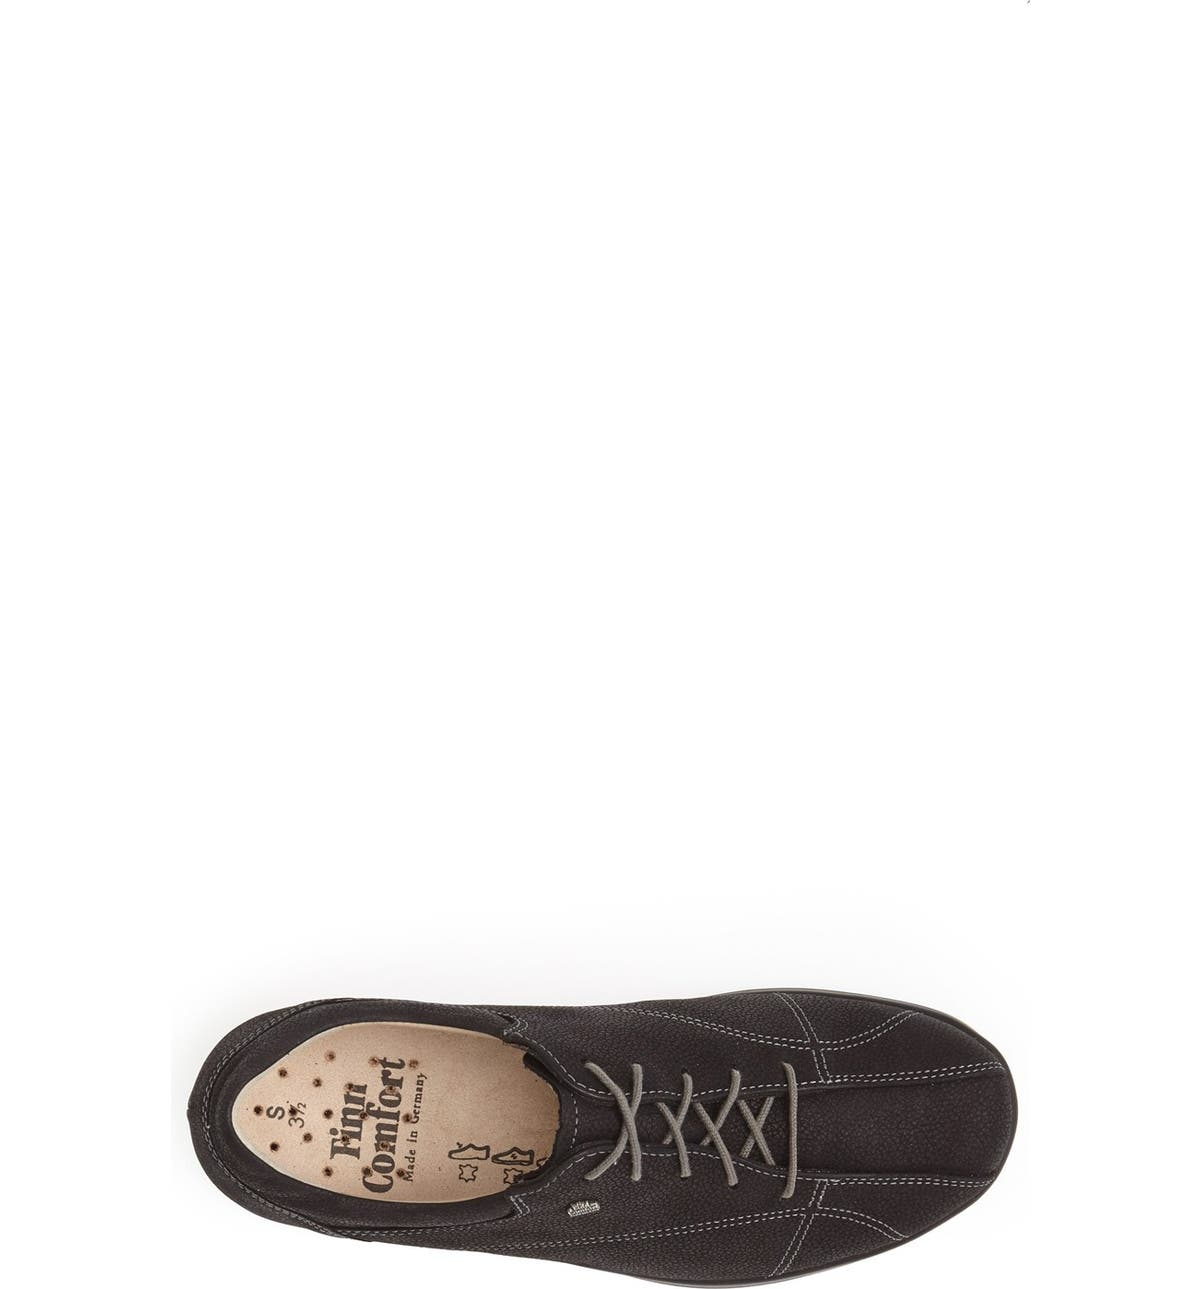 585aecd95c Finn Comfort 'Ariano' Leather Sneaker (Women) | Nordstrom